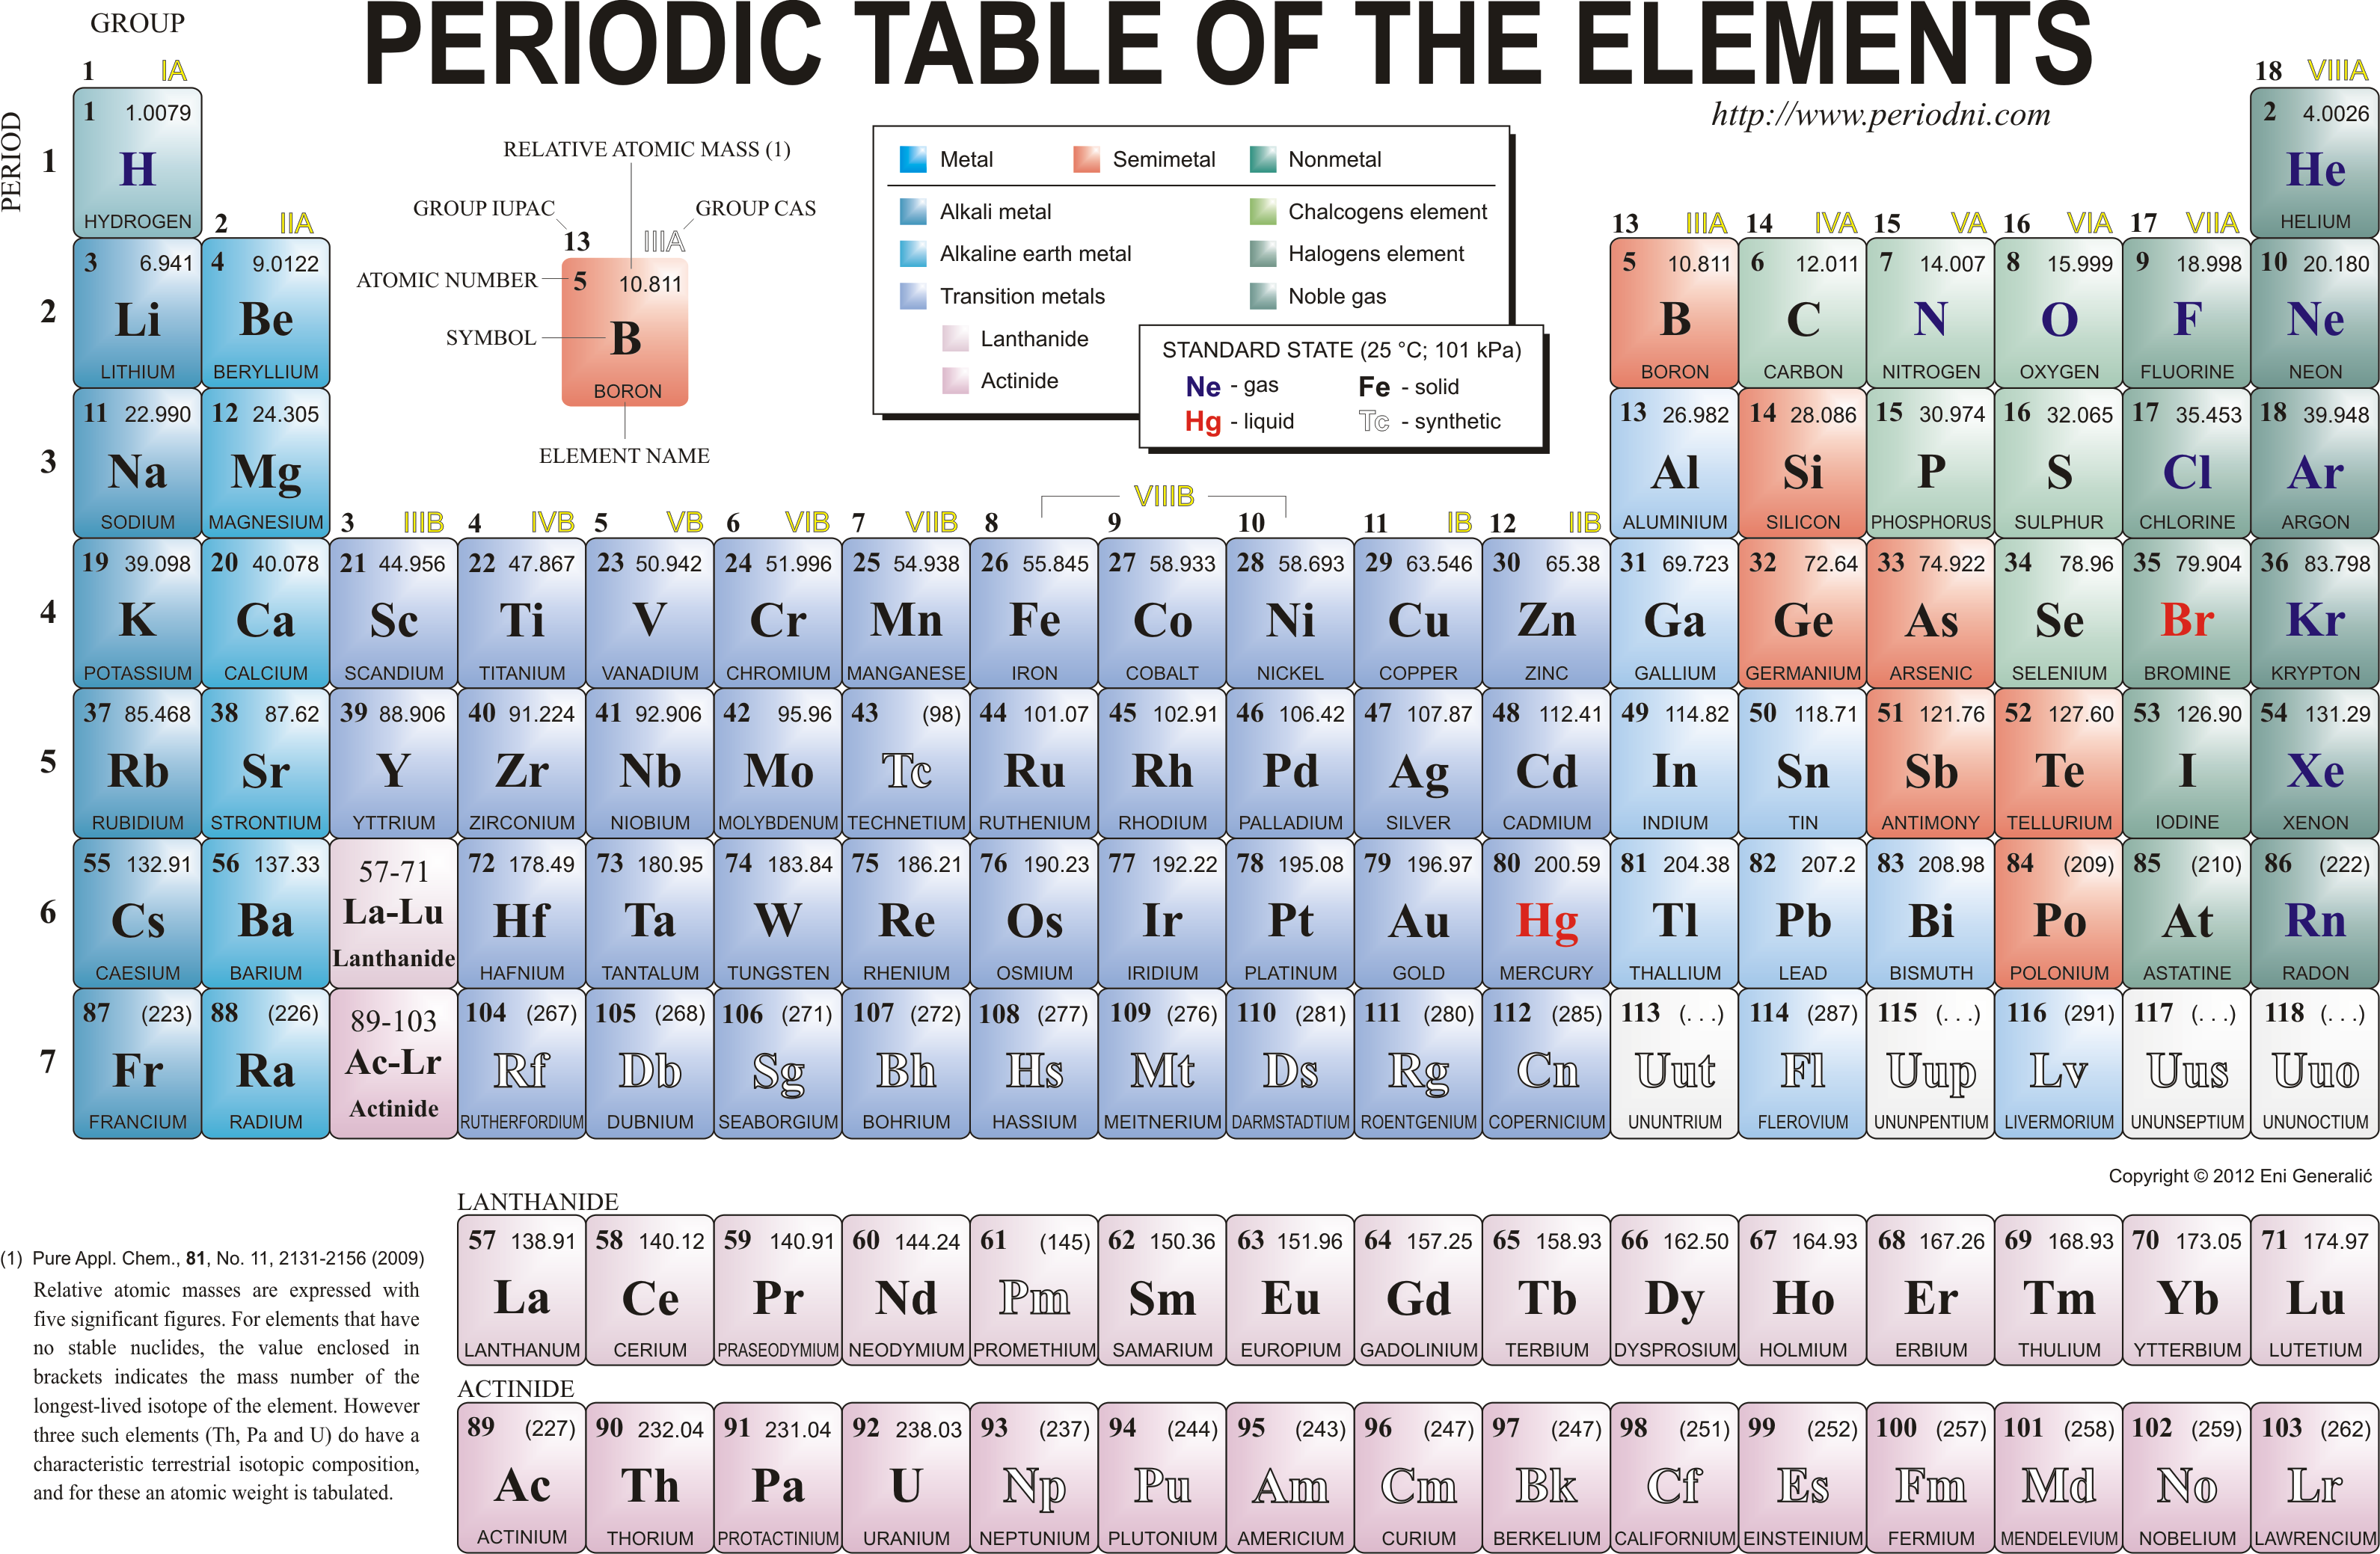 Printable periodic table of elements with everything labeled ideal printable urtaz Images